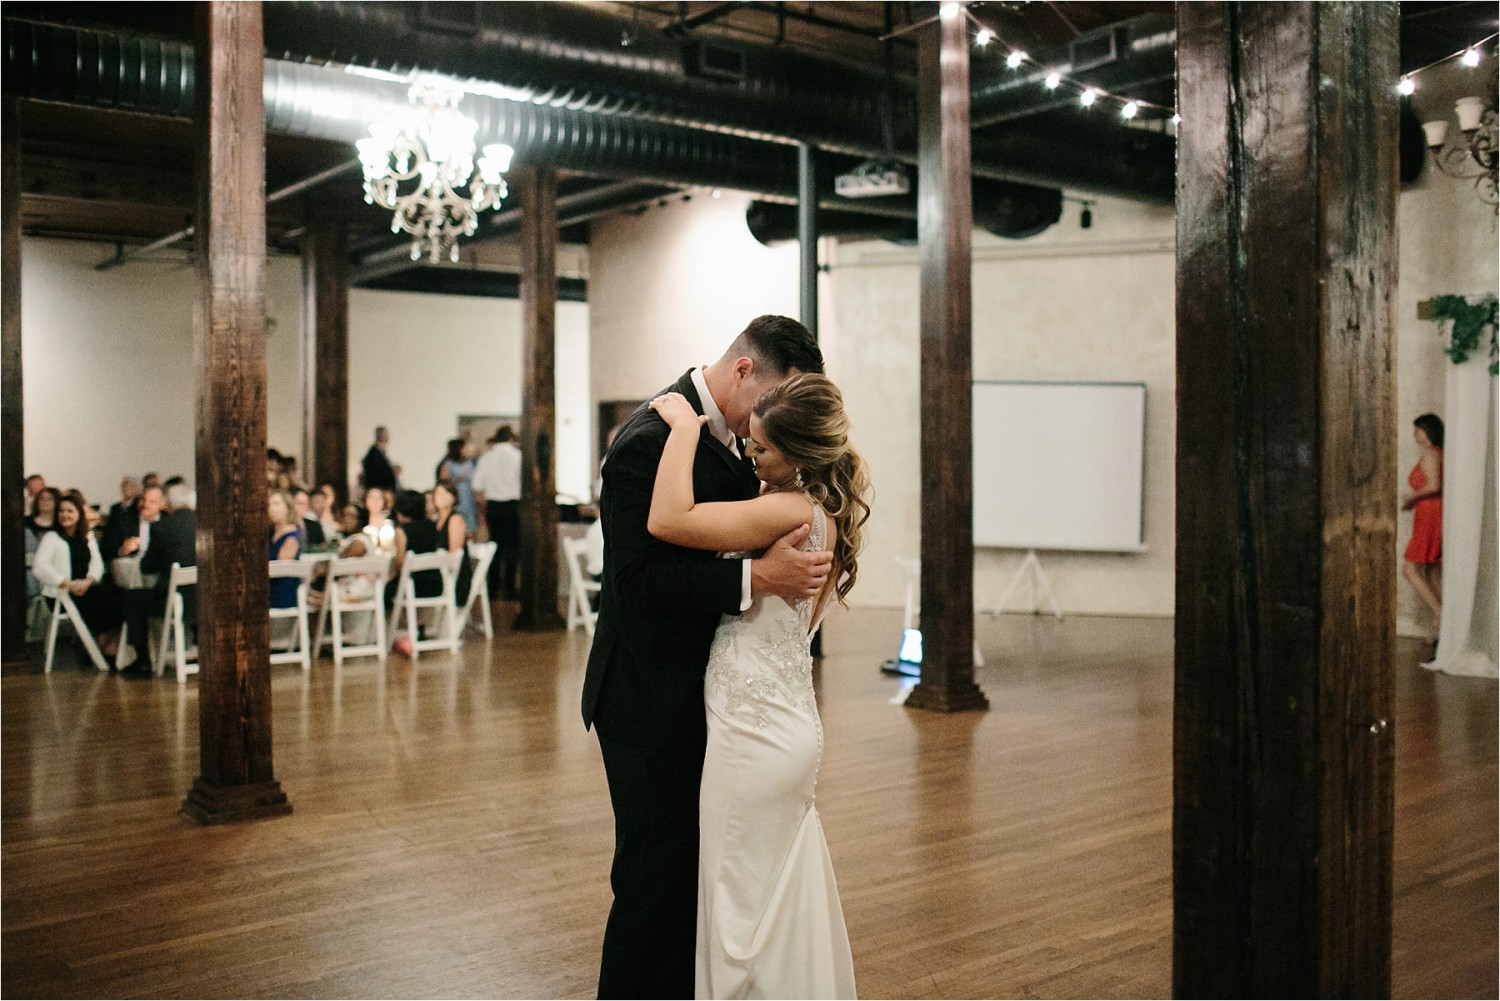 Holly + Jordan __ a black, gold, and greenery organic wedding at The Phoenix Ballroom in Waco, TX by North Texas Wedding Photographer Rachel Meagan Photography __ 68